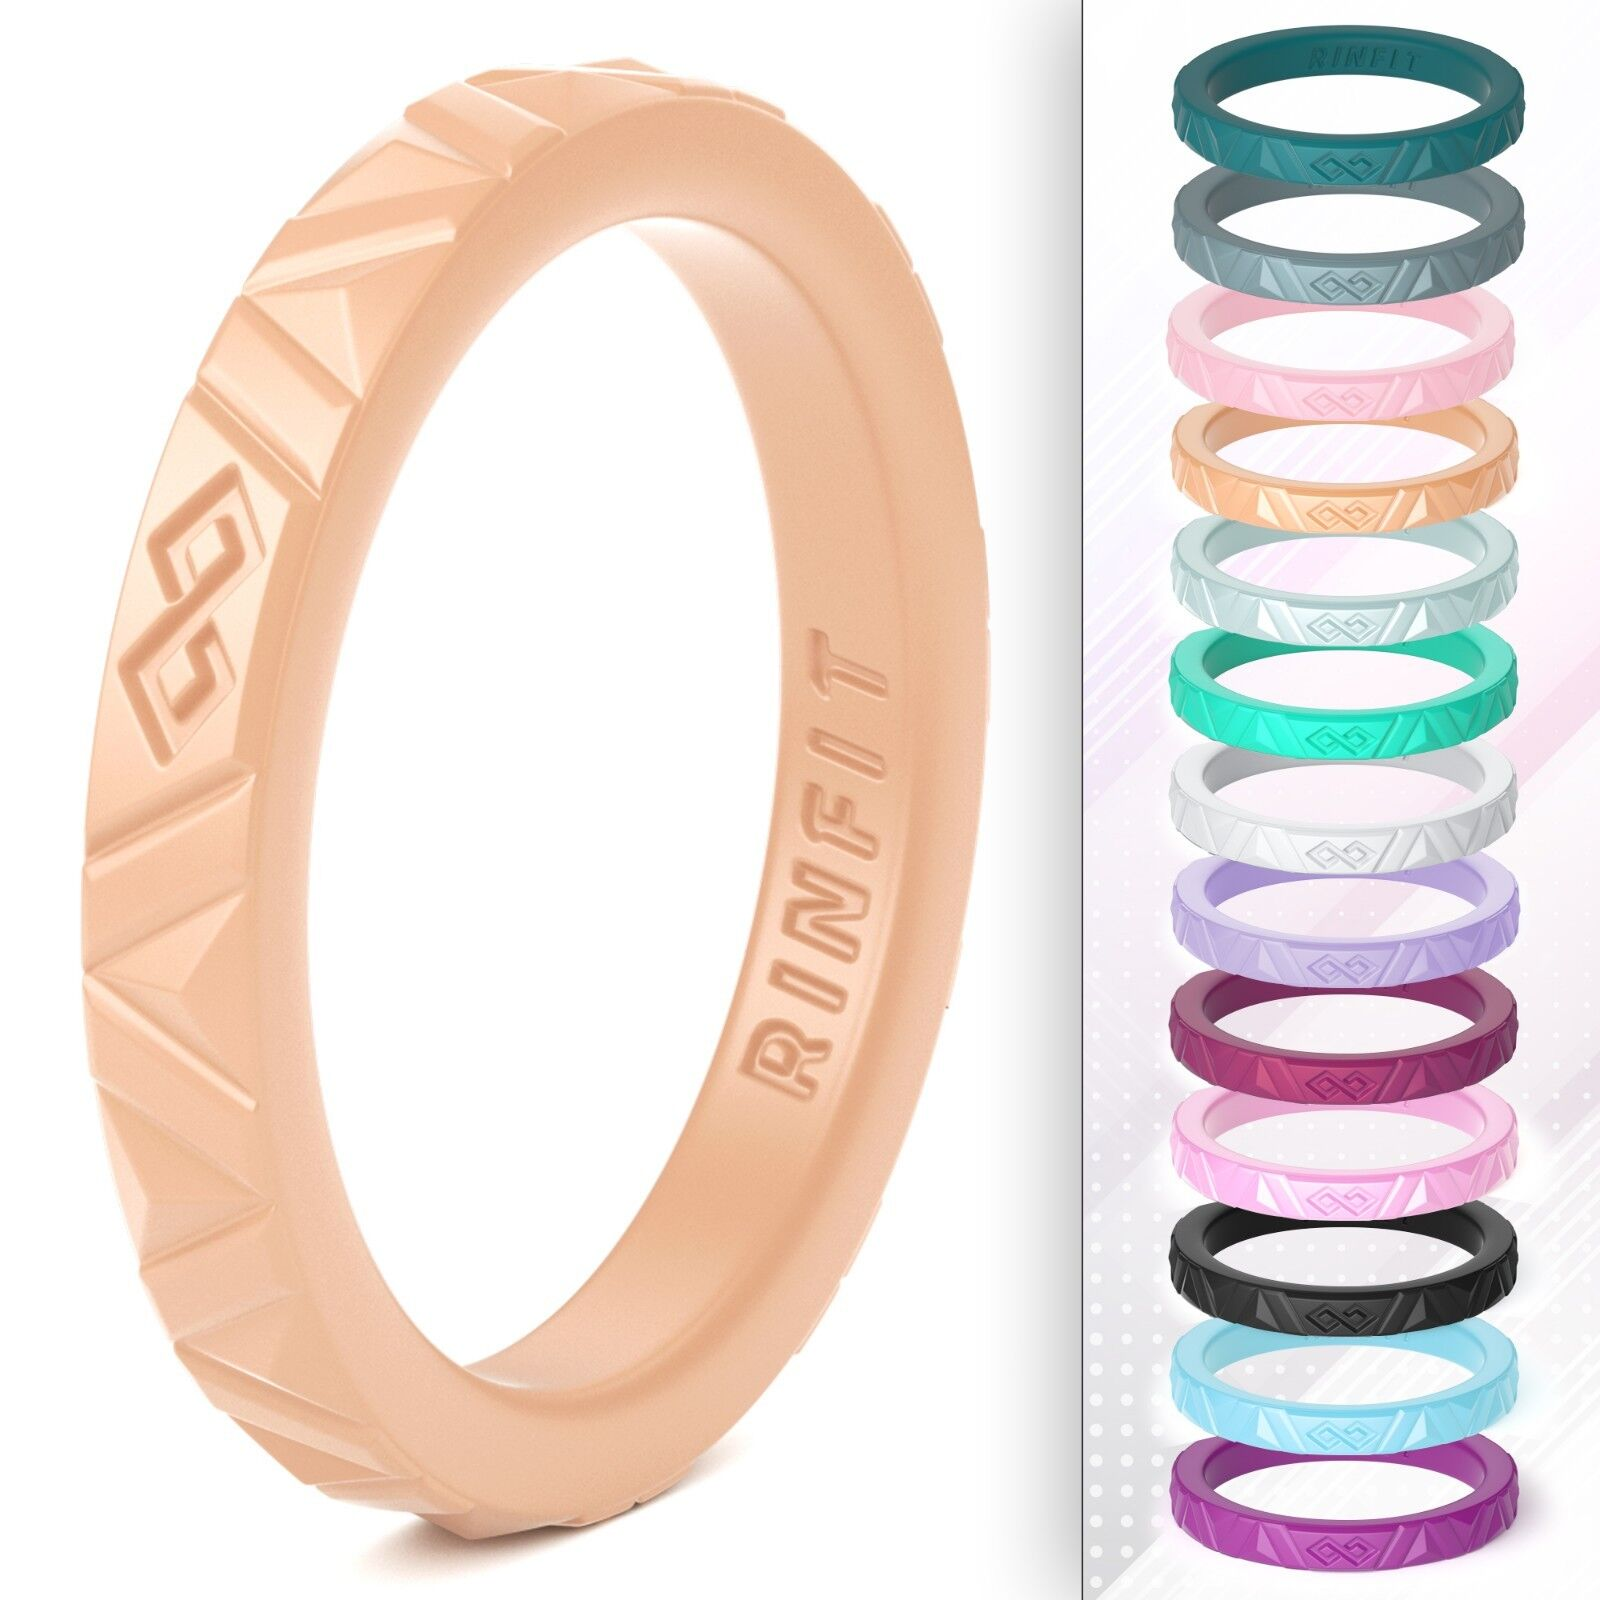 Stackable Silicone Wedding Ring | Band for Women by Rinfit -